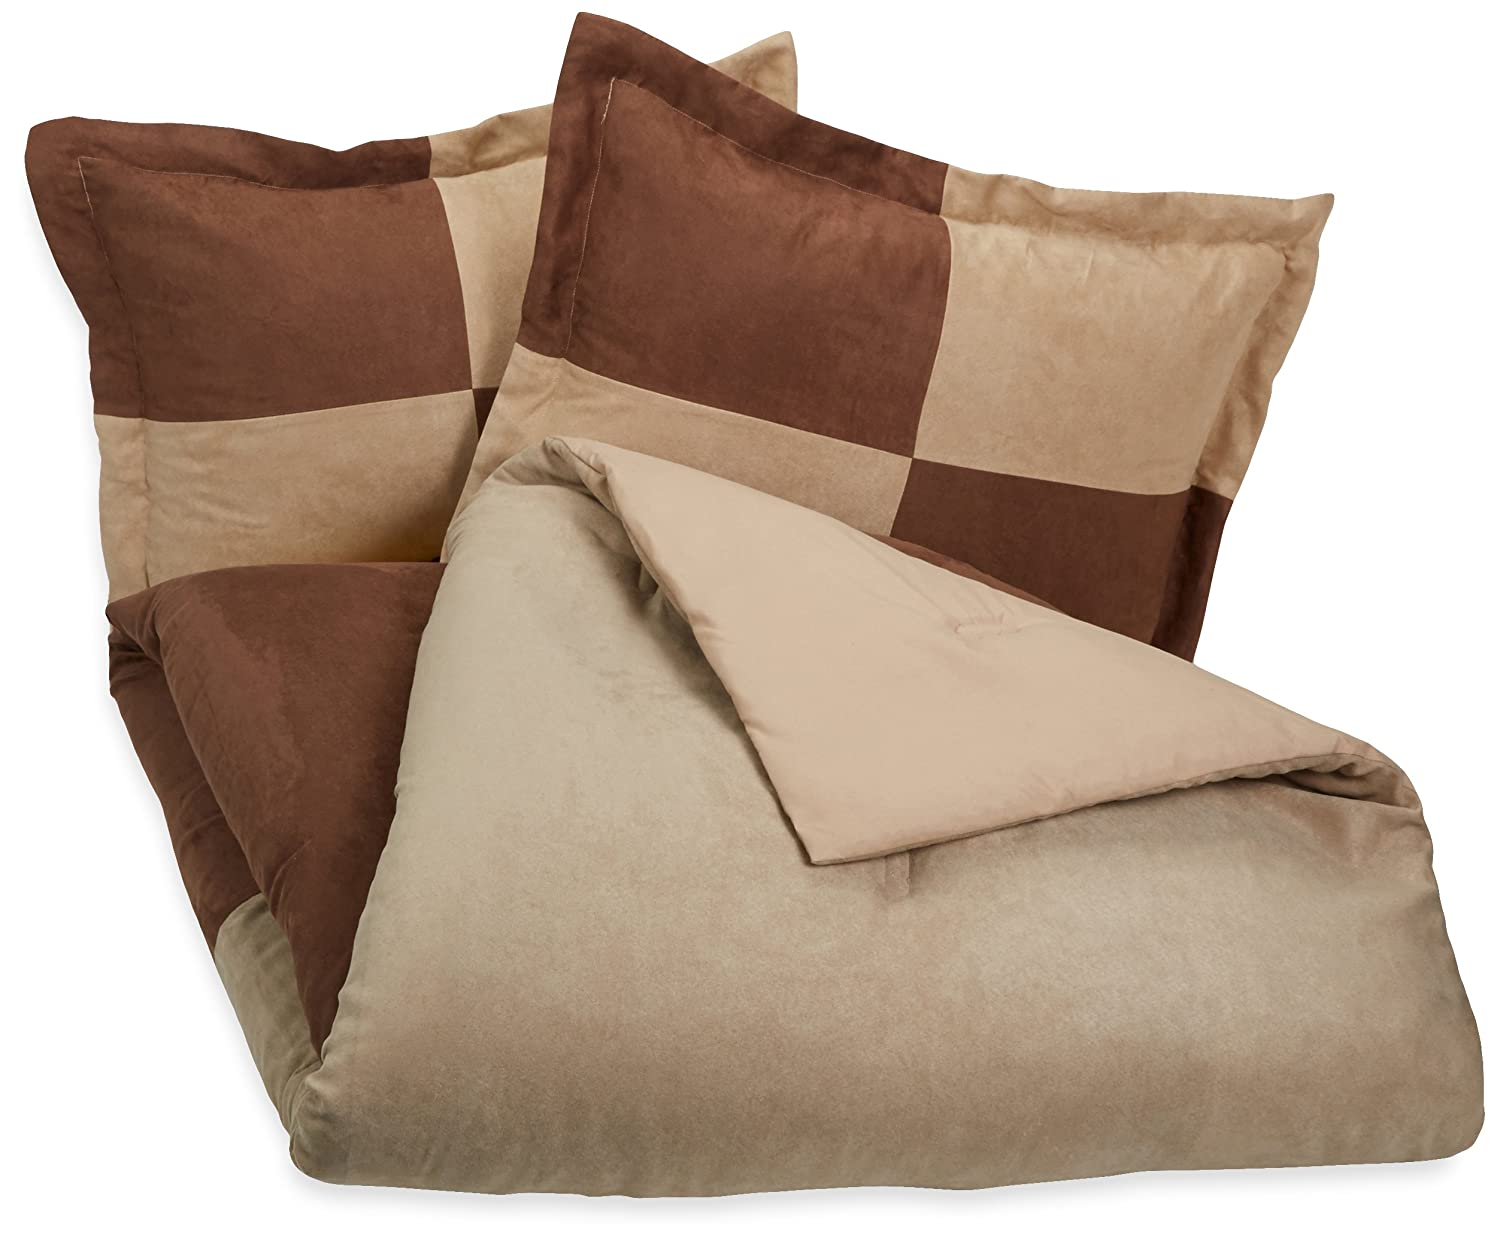 AmazonBasics 3-Piece Two-Tone Microsuede Comforter Set - Full/Queen, Chocolate